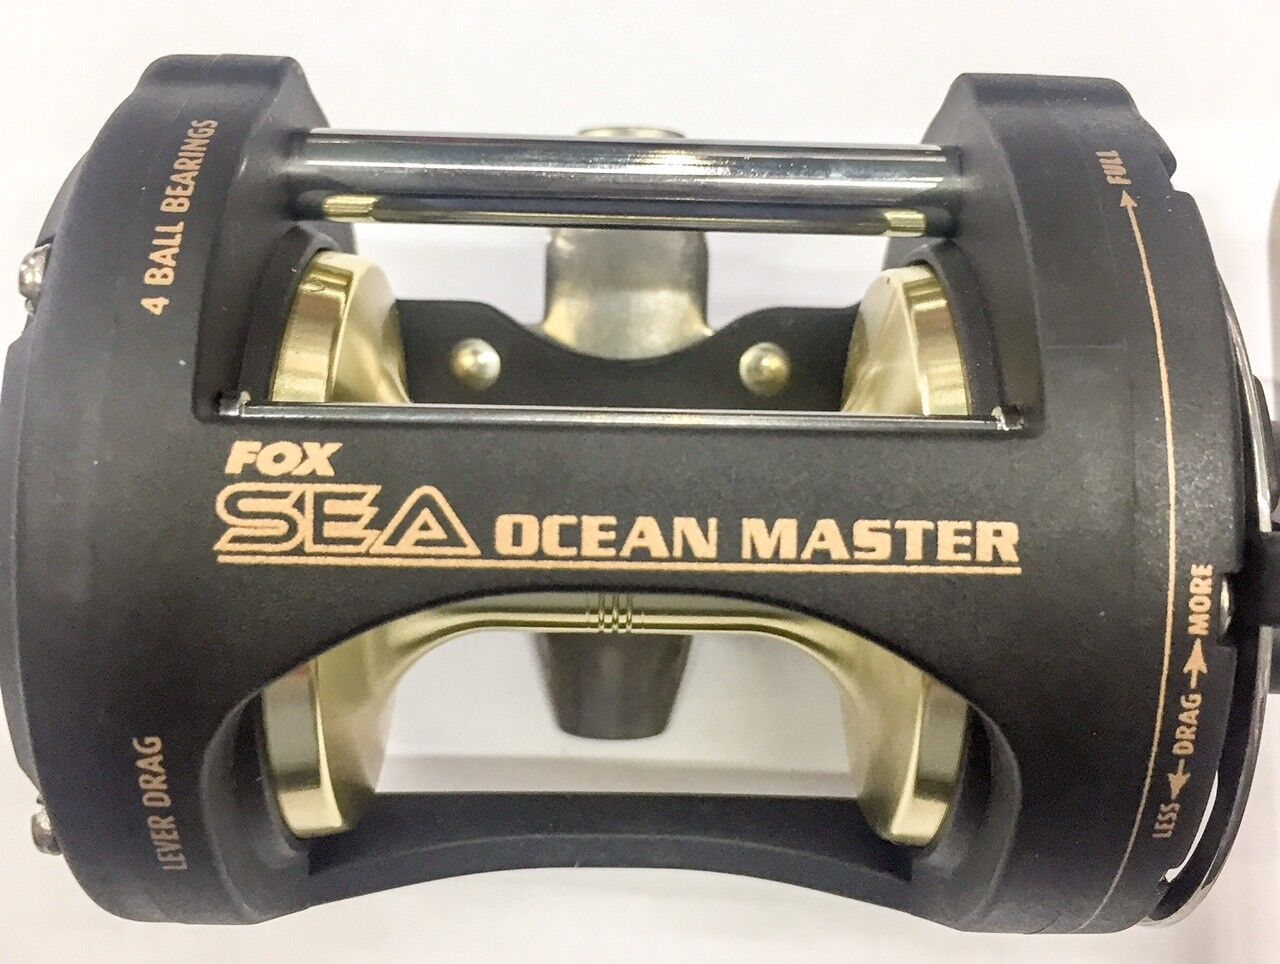 FOX SEA OCEAN MASTER T10 MULTIPLIER REEL RIGHT HANDLE    LEVER DRAG VINTAGE RAREST bc5054